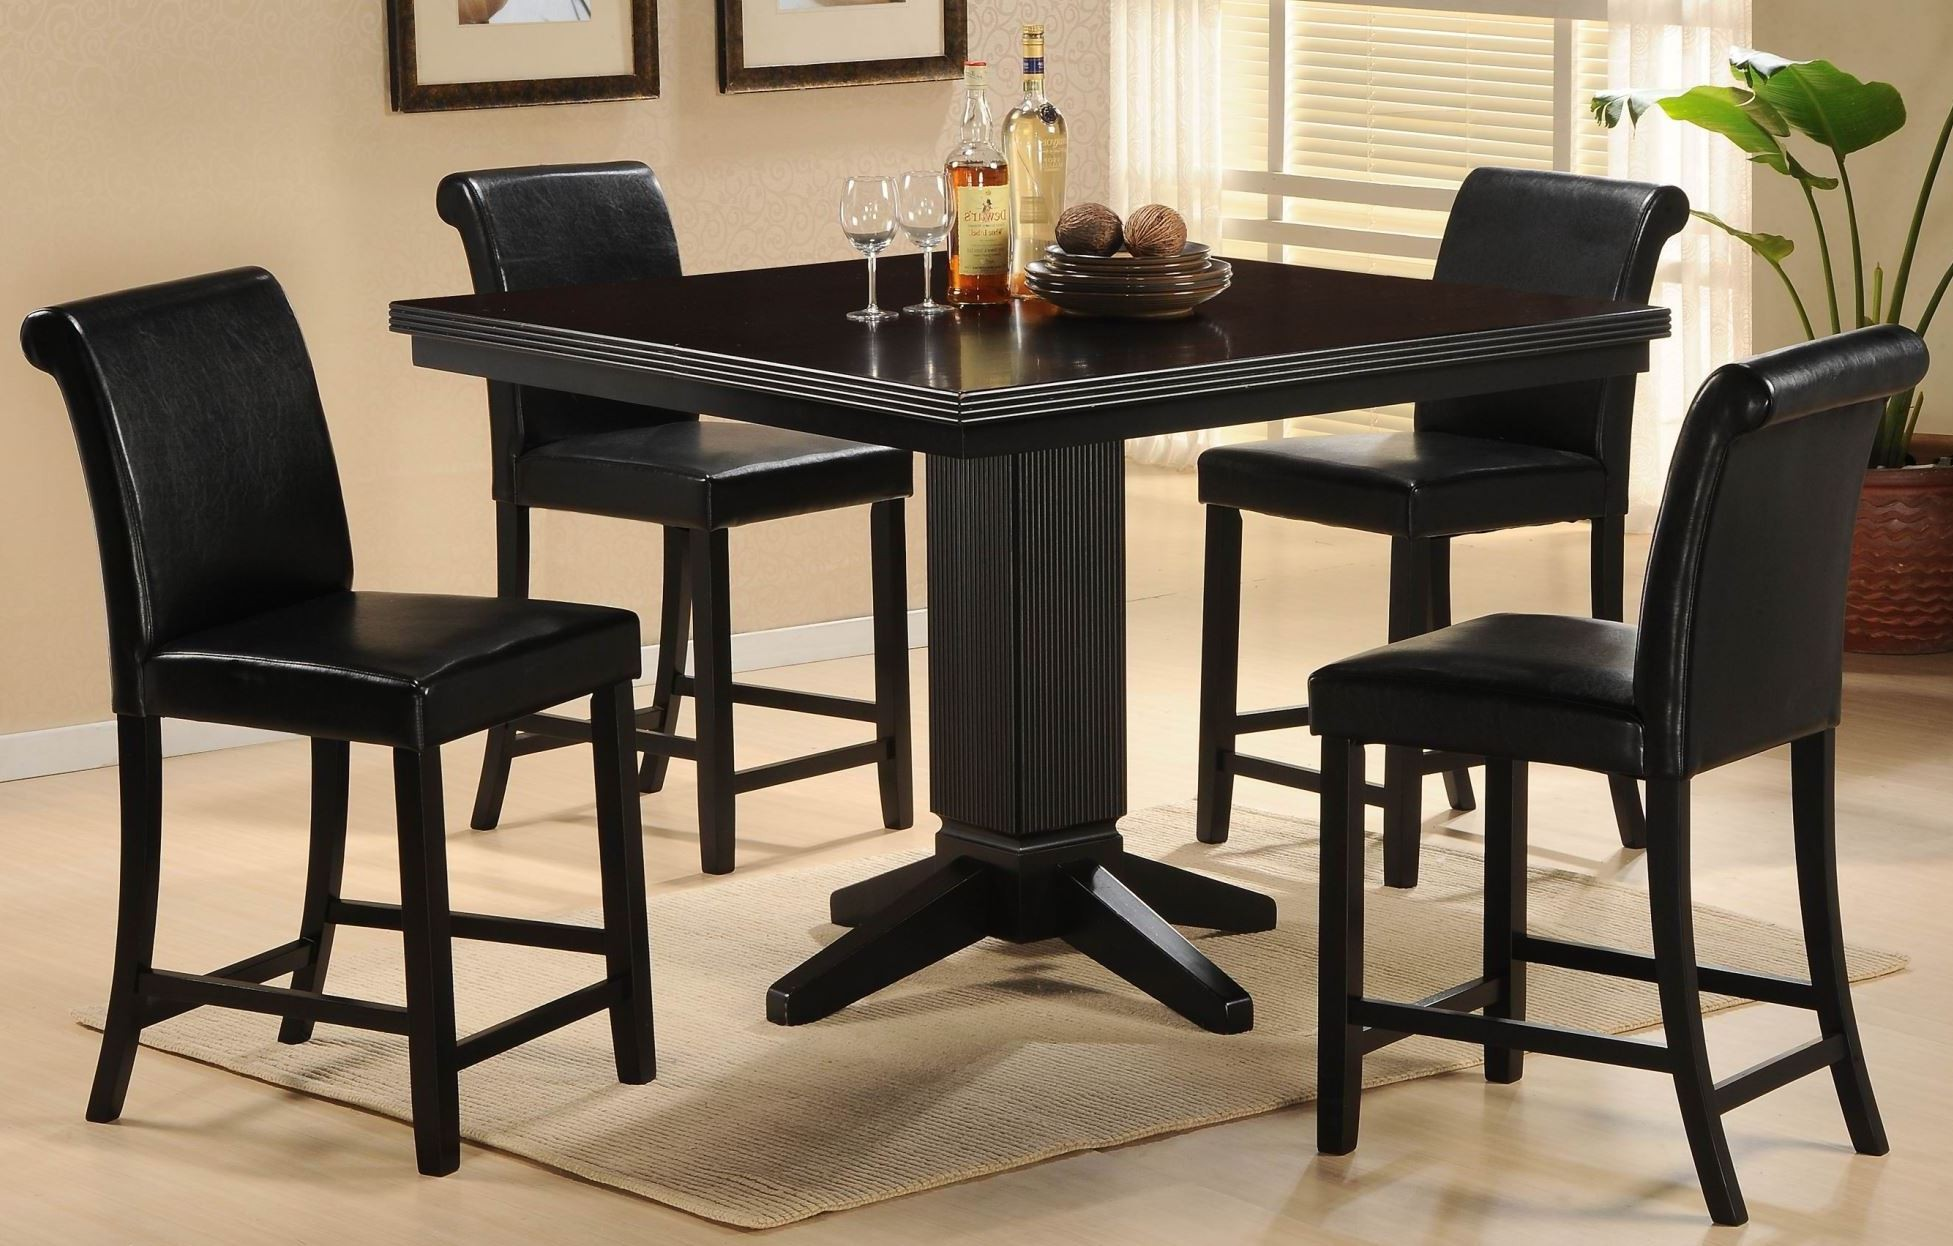 papario nook counter height dining room set from homelegance 5351 36 coleman furniture. Black Bedroom Furniture Sets. Home Design Ideas